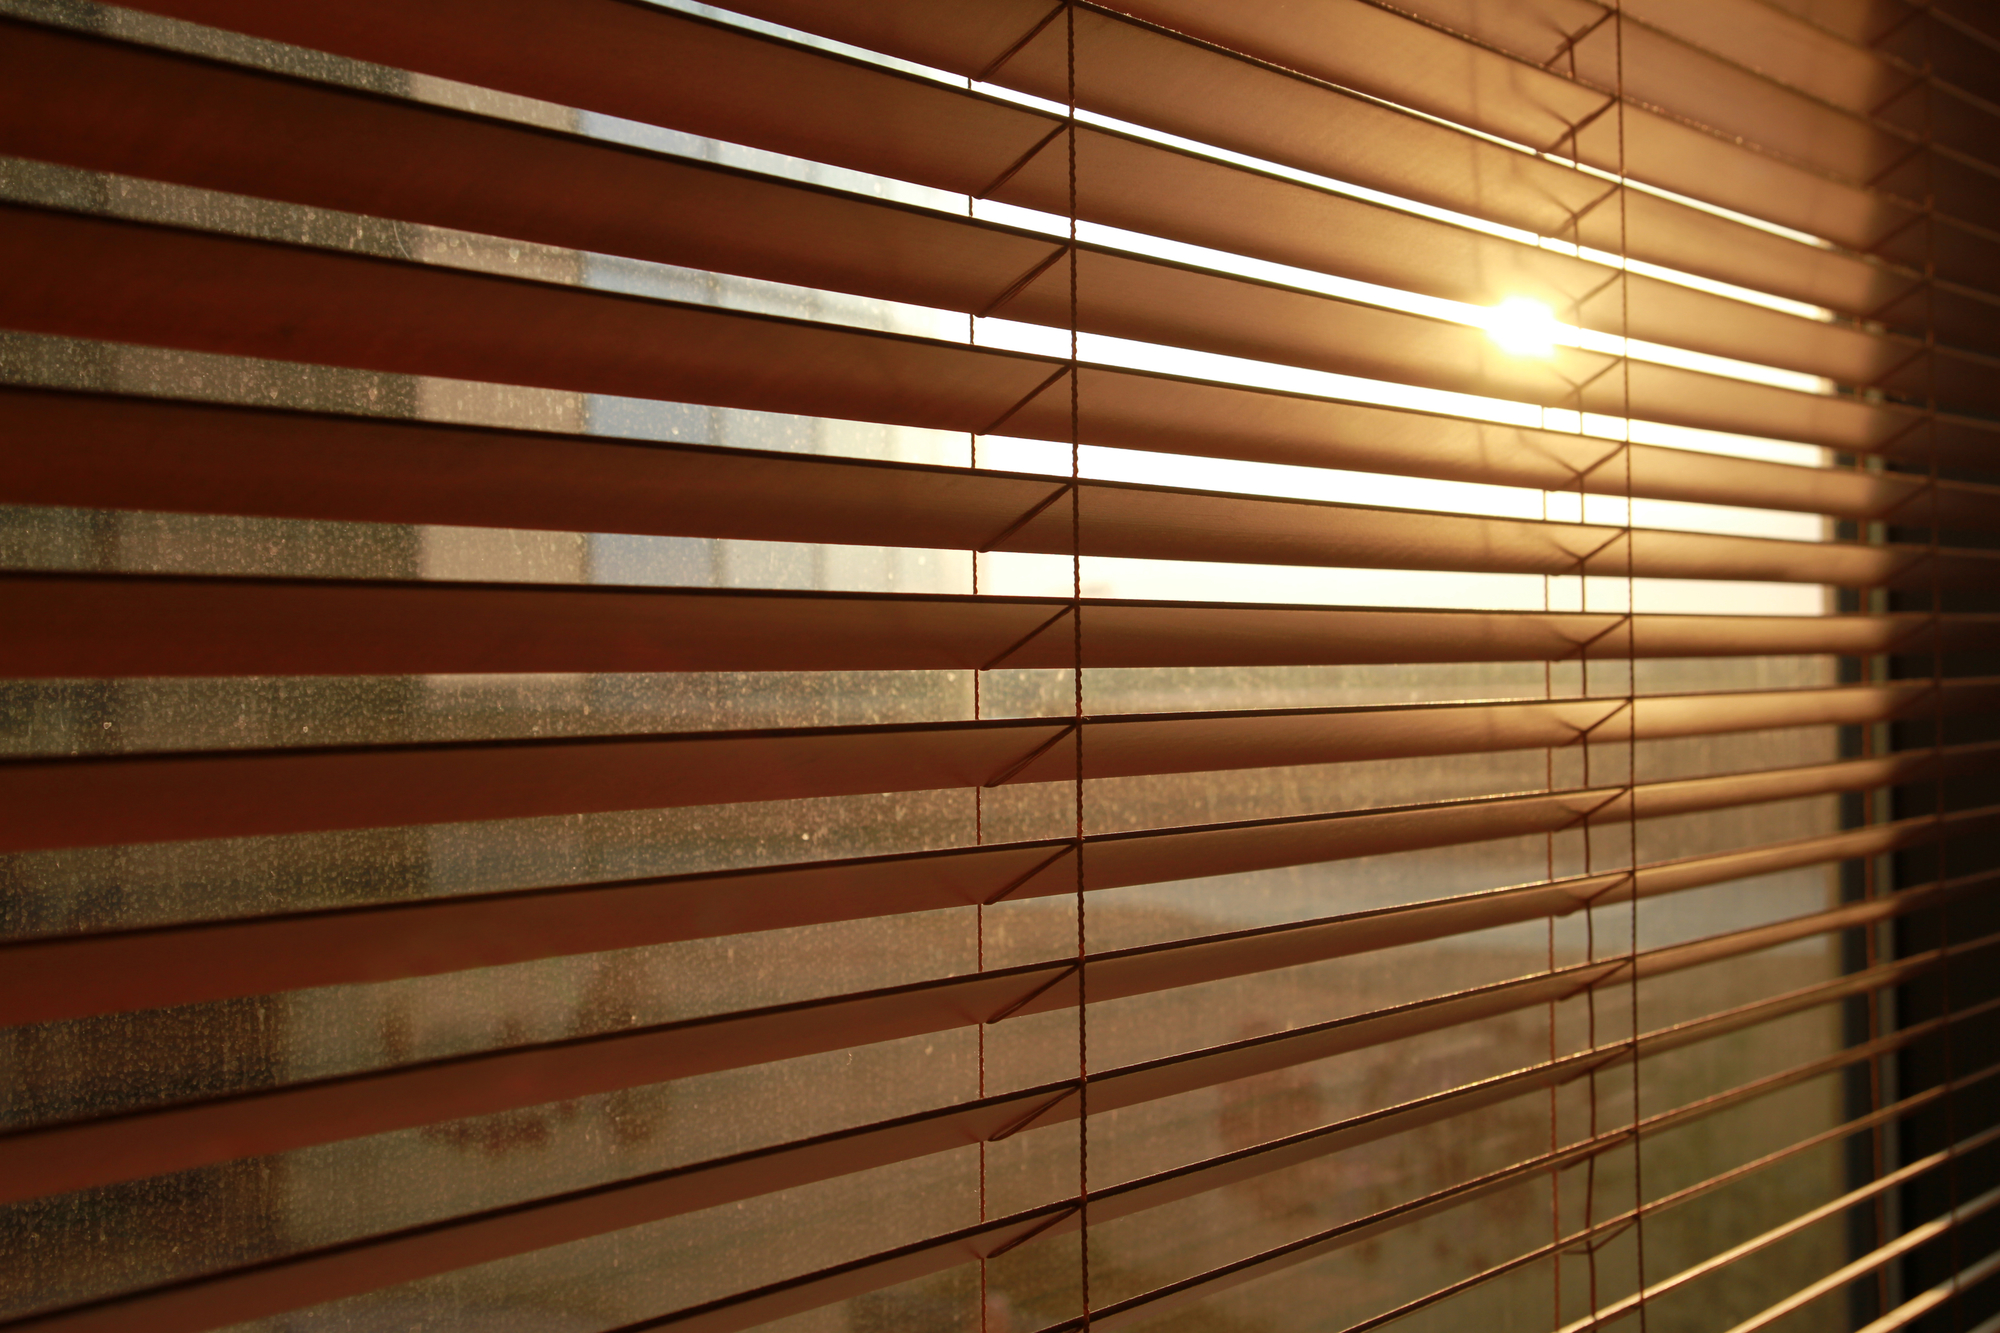 The Frog Blinds Shutters Drapes image 0